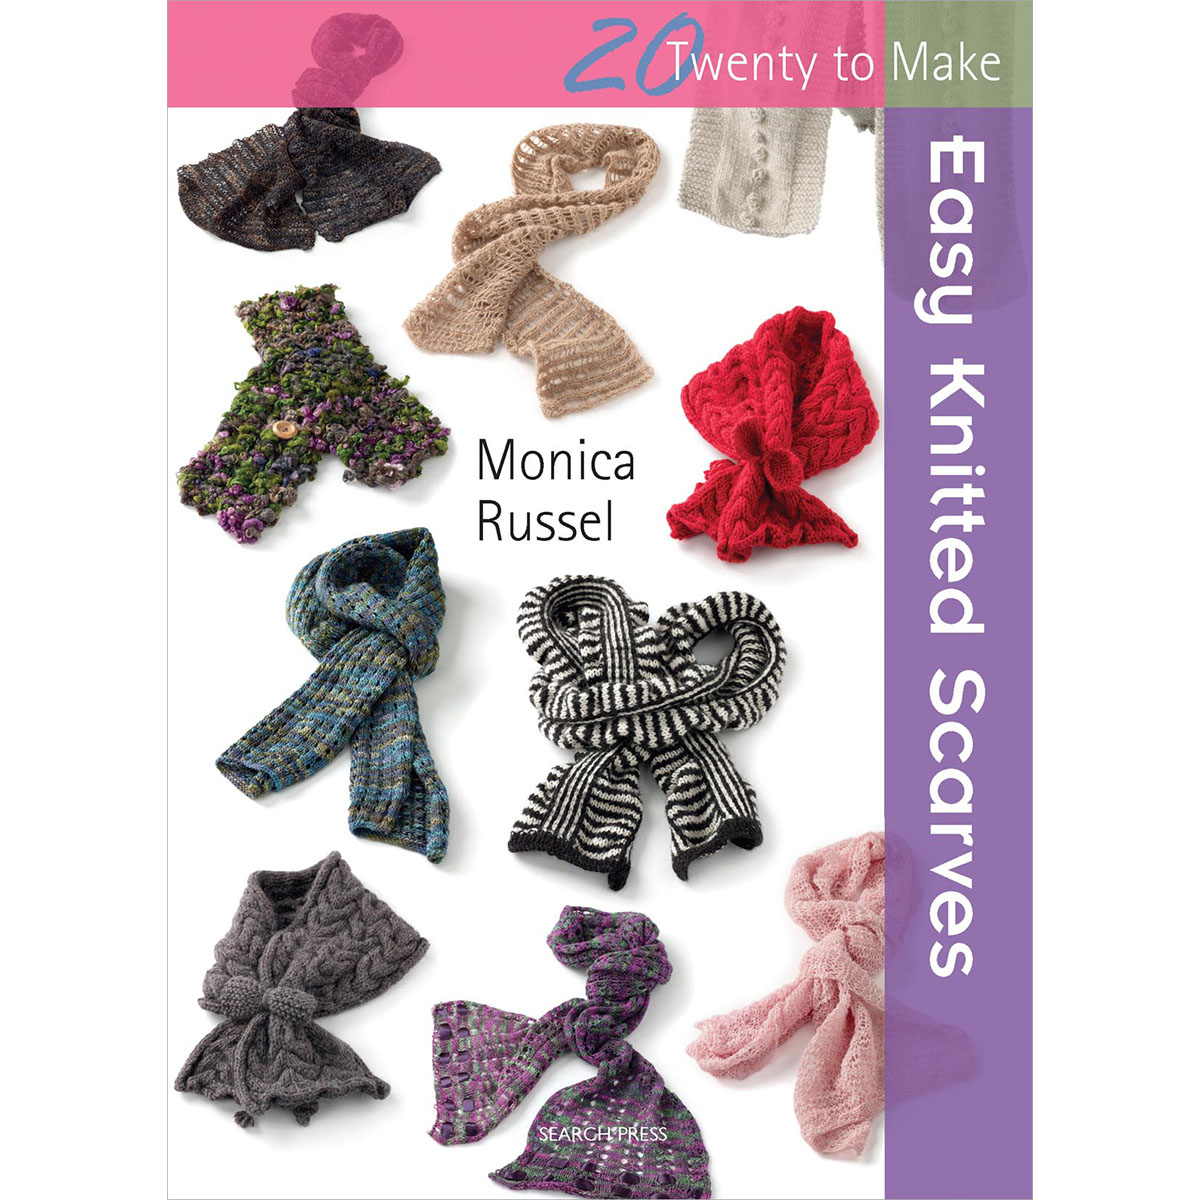 Knitted Scarf Pattern Books : Search Press Books Easy Knitted Scarves (20 To Make)